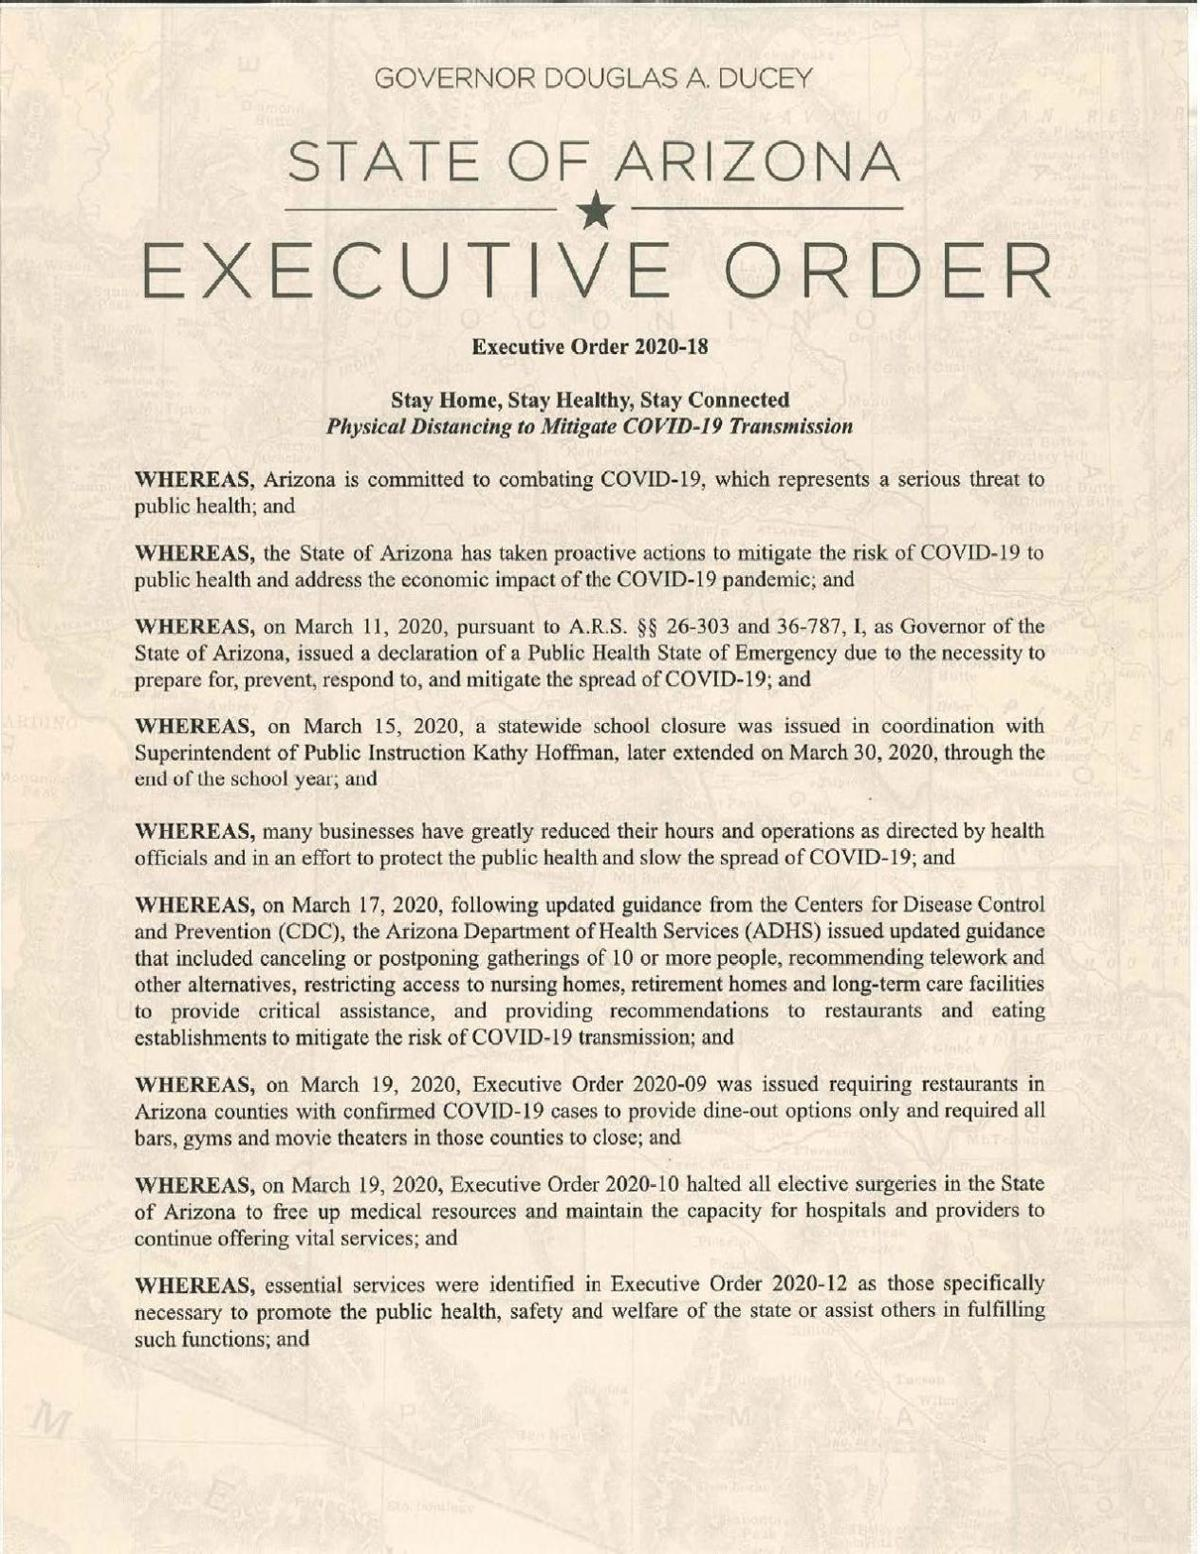 Ducey Executive Order -Stay home